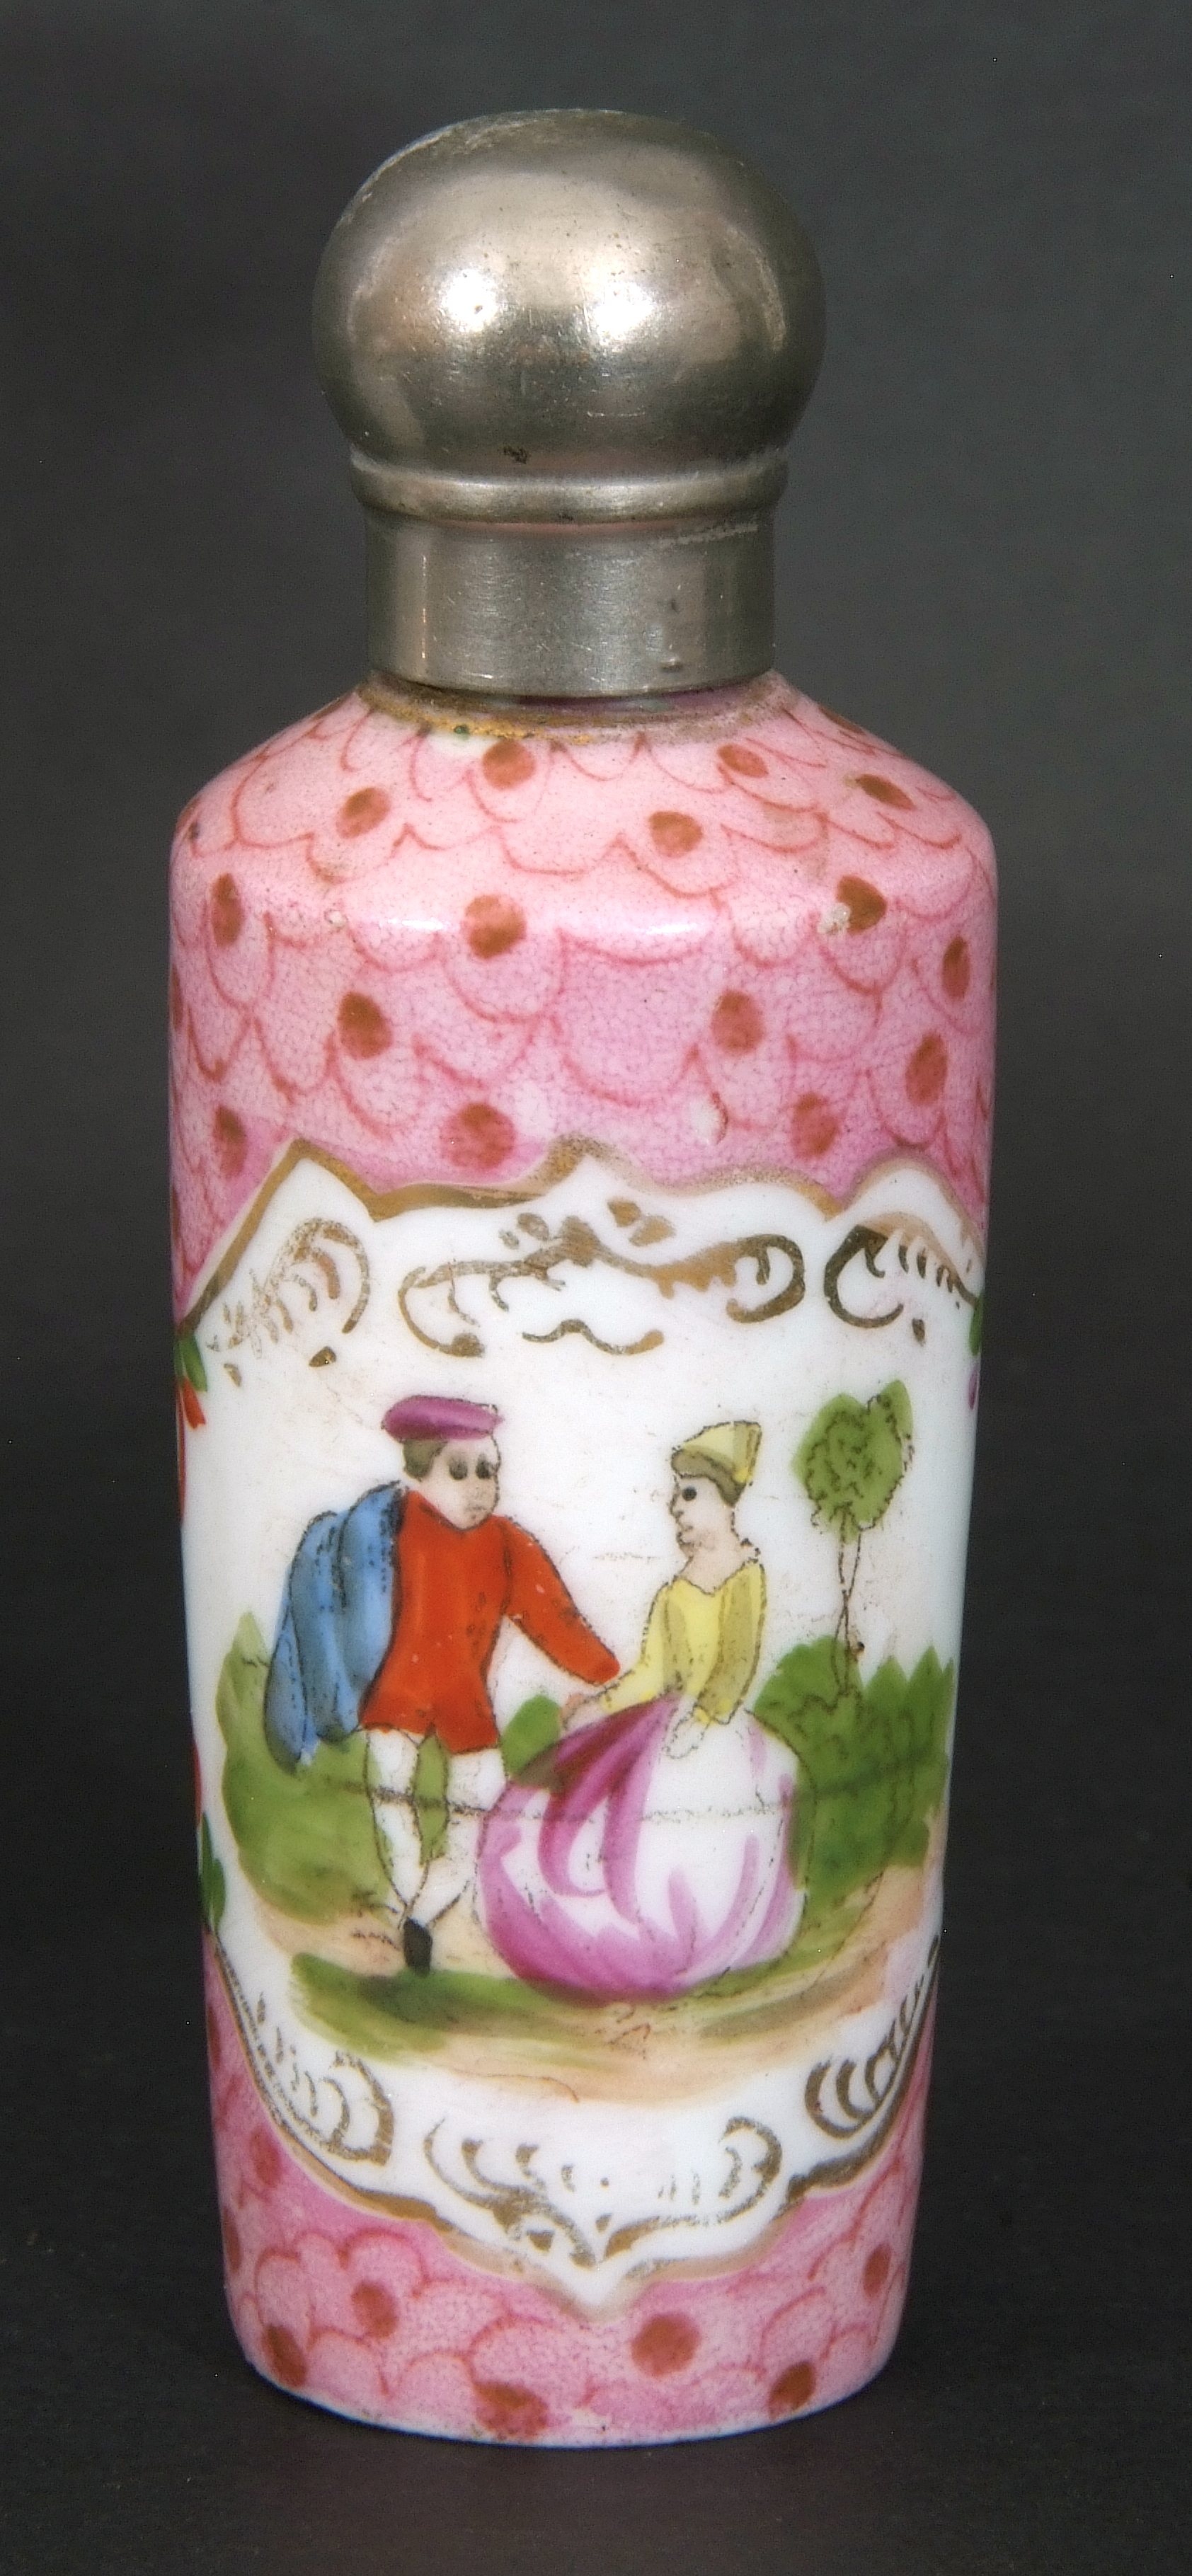 Mixed Lot: 19th century milk glass scent bottle with gilt metal hinged lid with inset to cap, a - Image 5 of 12